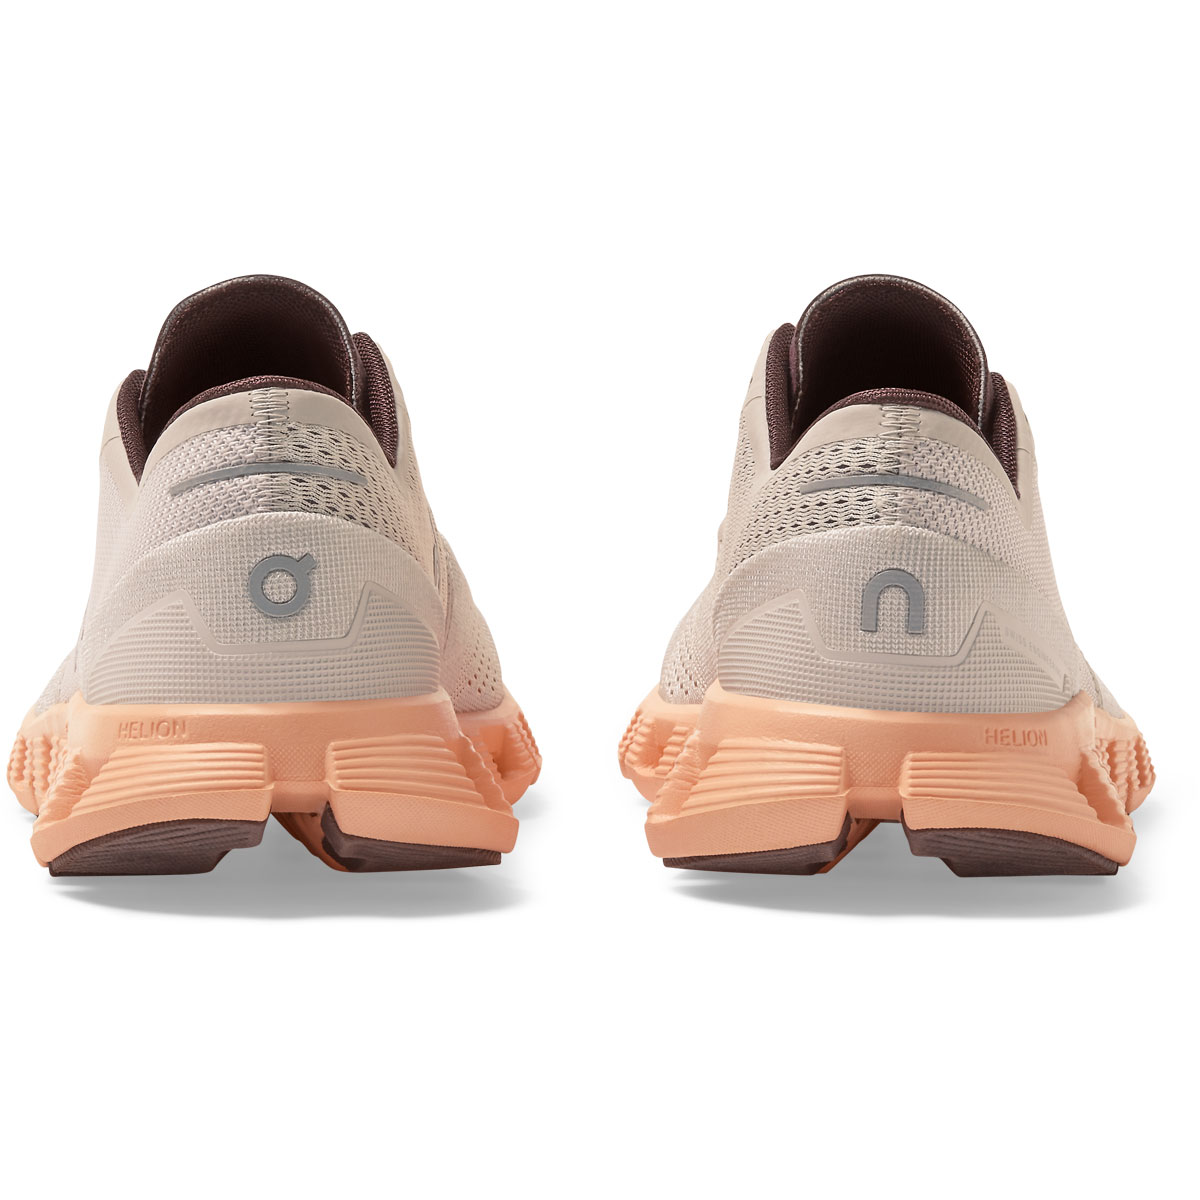 Women's On Cloud X 2.0 Running Shoe - Color: Silver/Almond - Size: 5 - Width: Regular, Silver/Almond, large, image 5